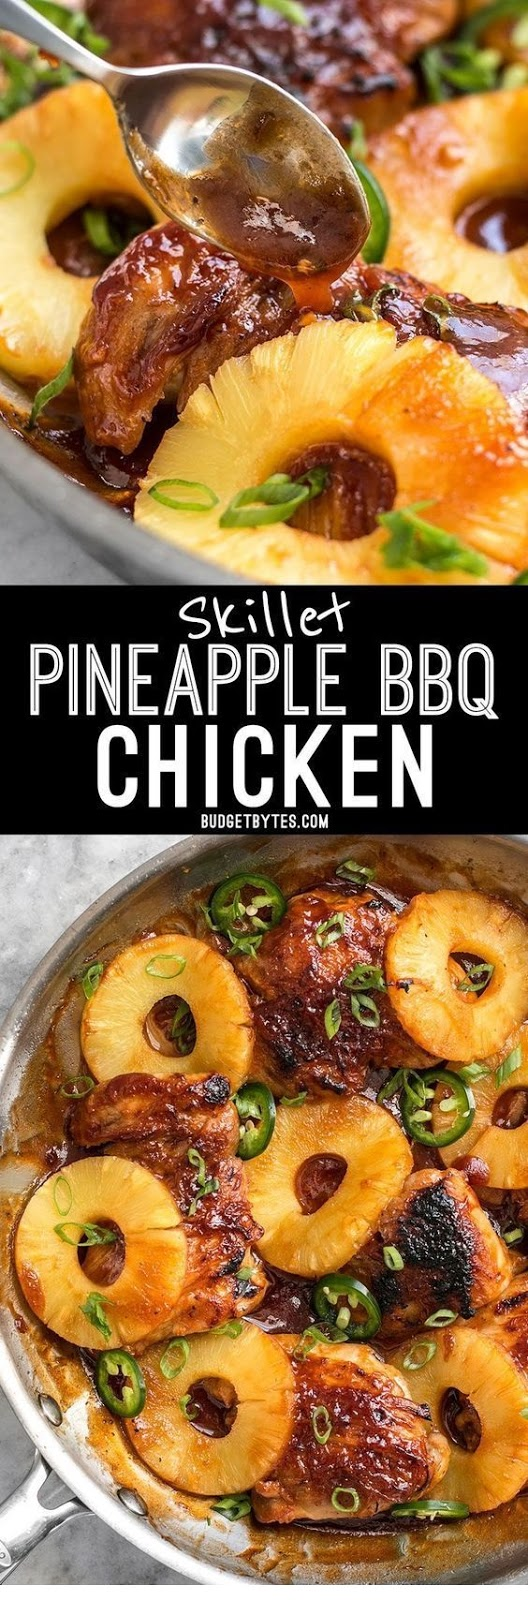 Skillet Pineapple Bbq Chicken